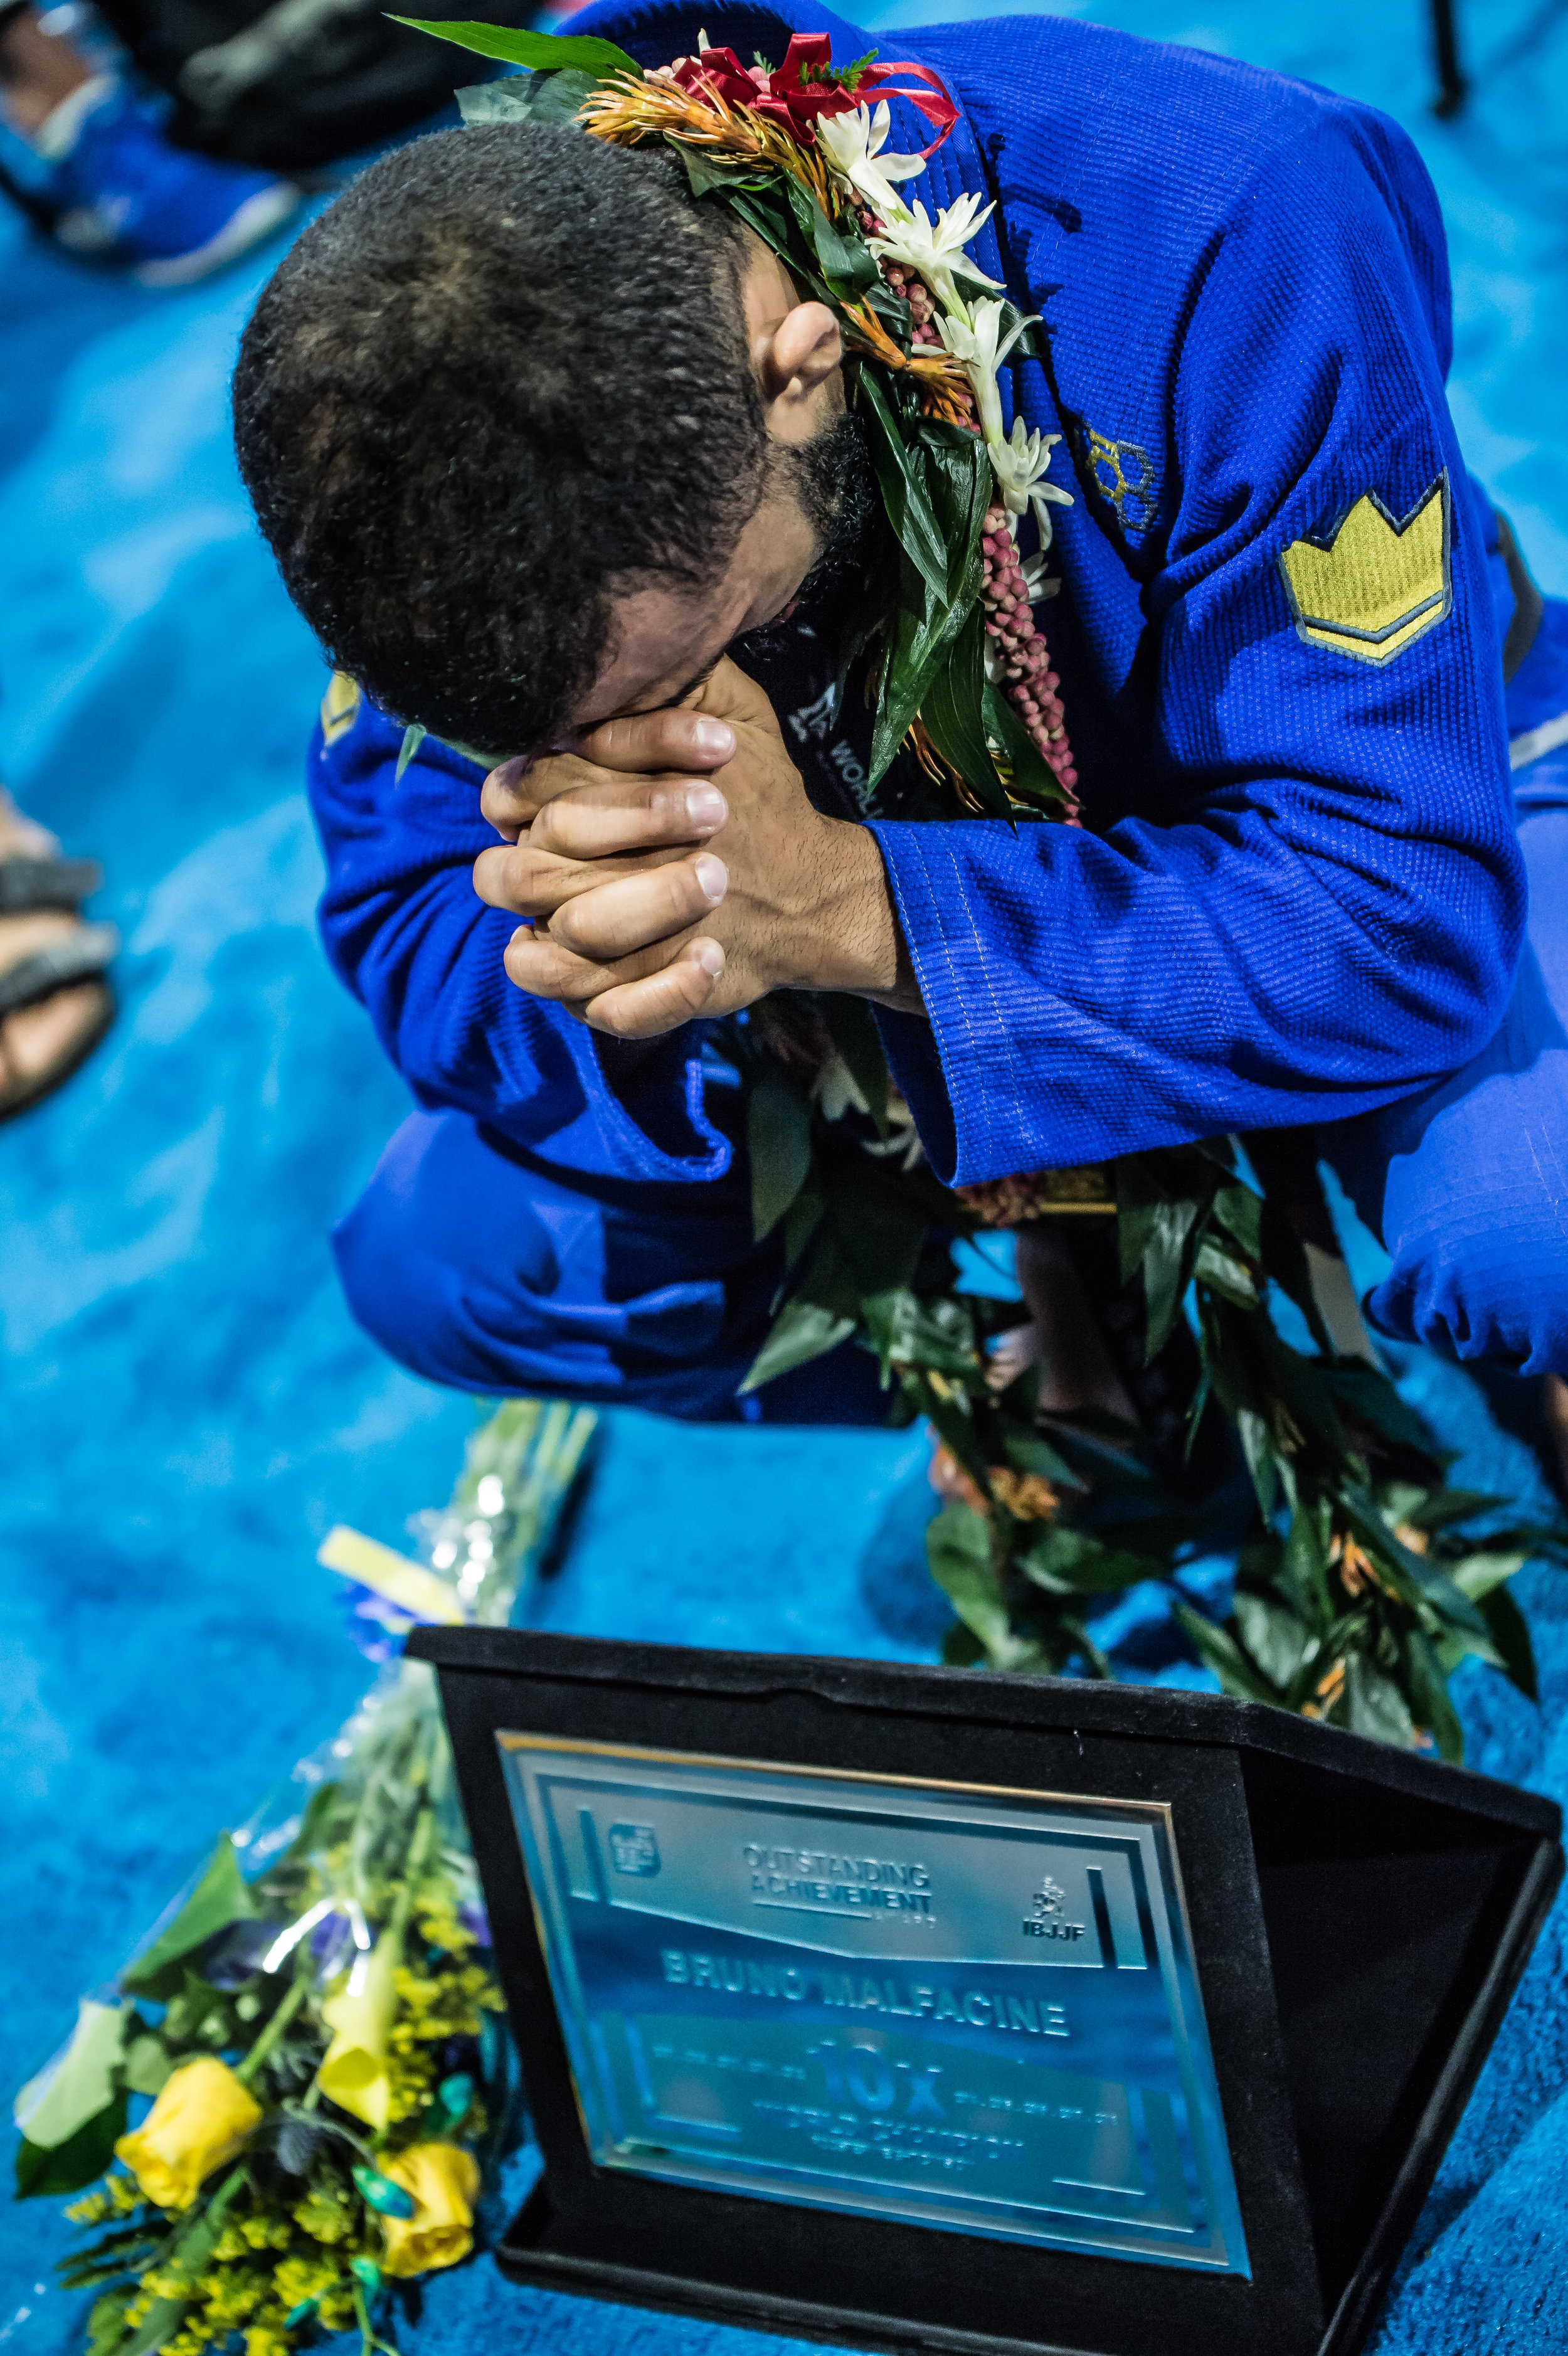 After winning his record 10th Rooster Weight Division Championship, Bruno Malfacine was invited back up to the podium to receive special recognition from the IBJJF for this accomplishment. He stepped off the podium and needed a moment to collect himself.